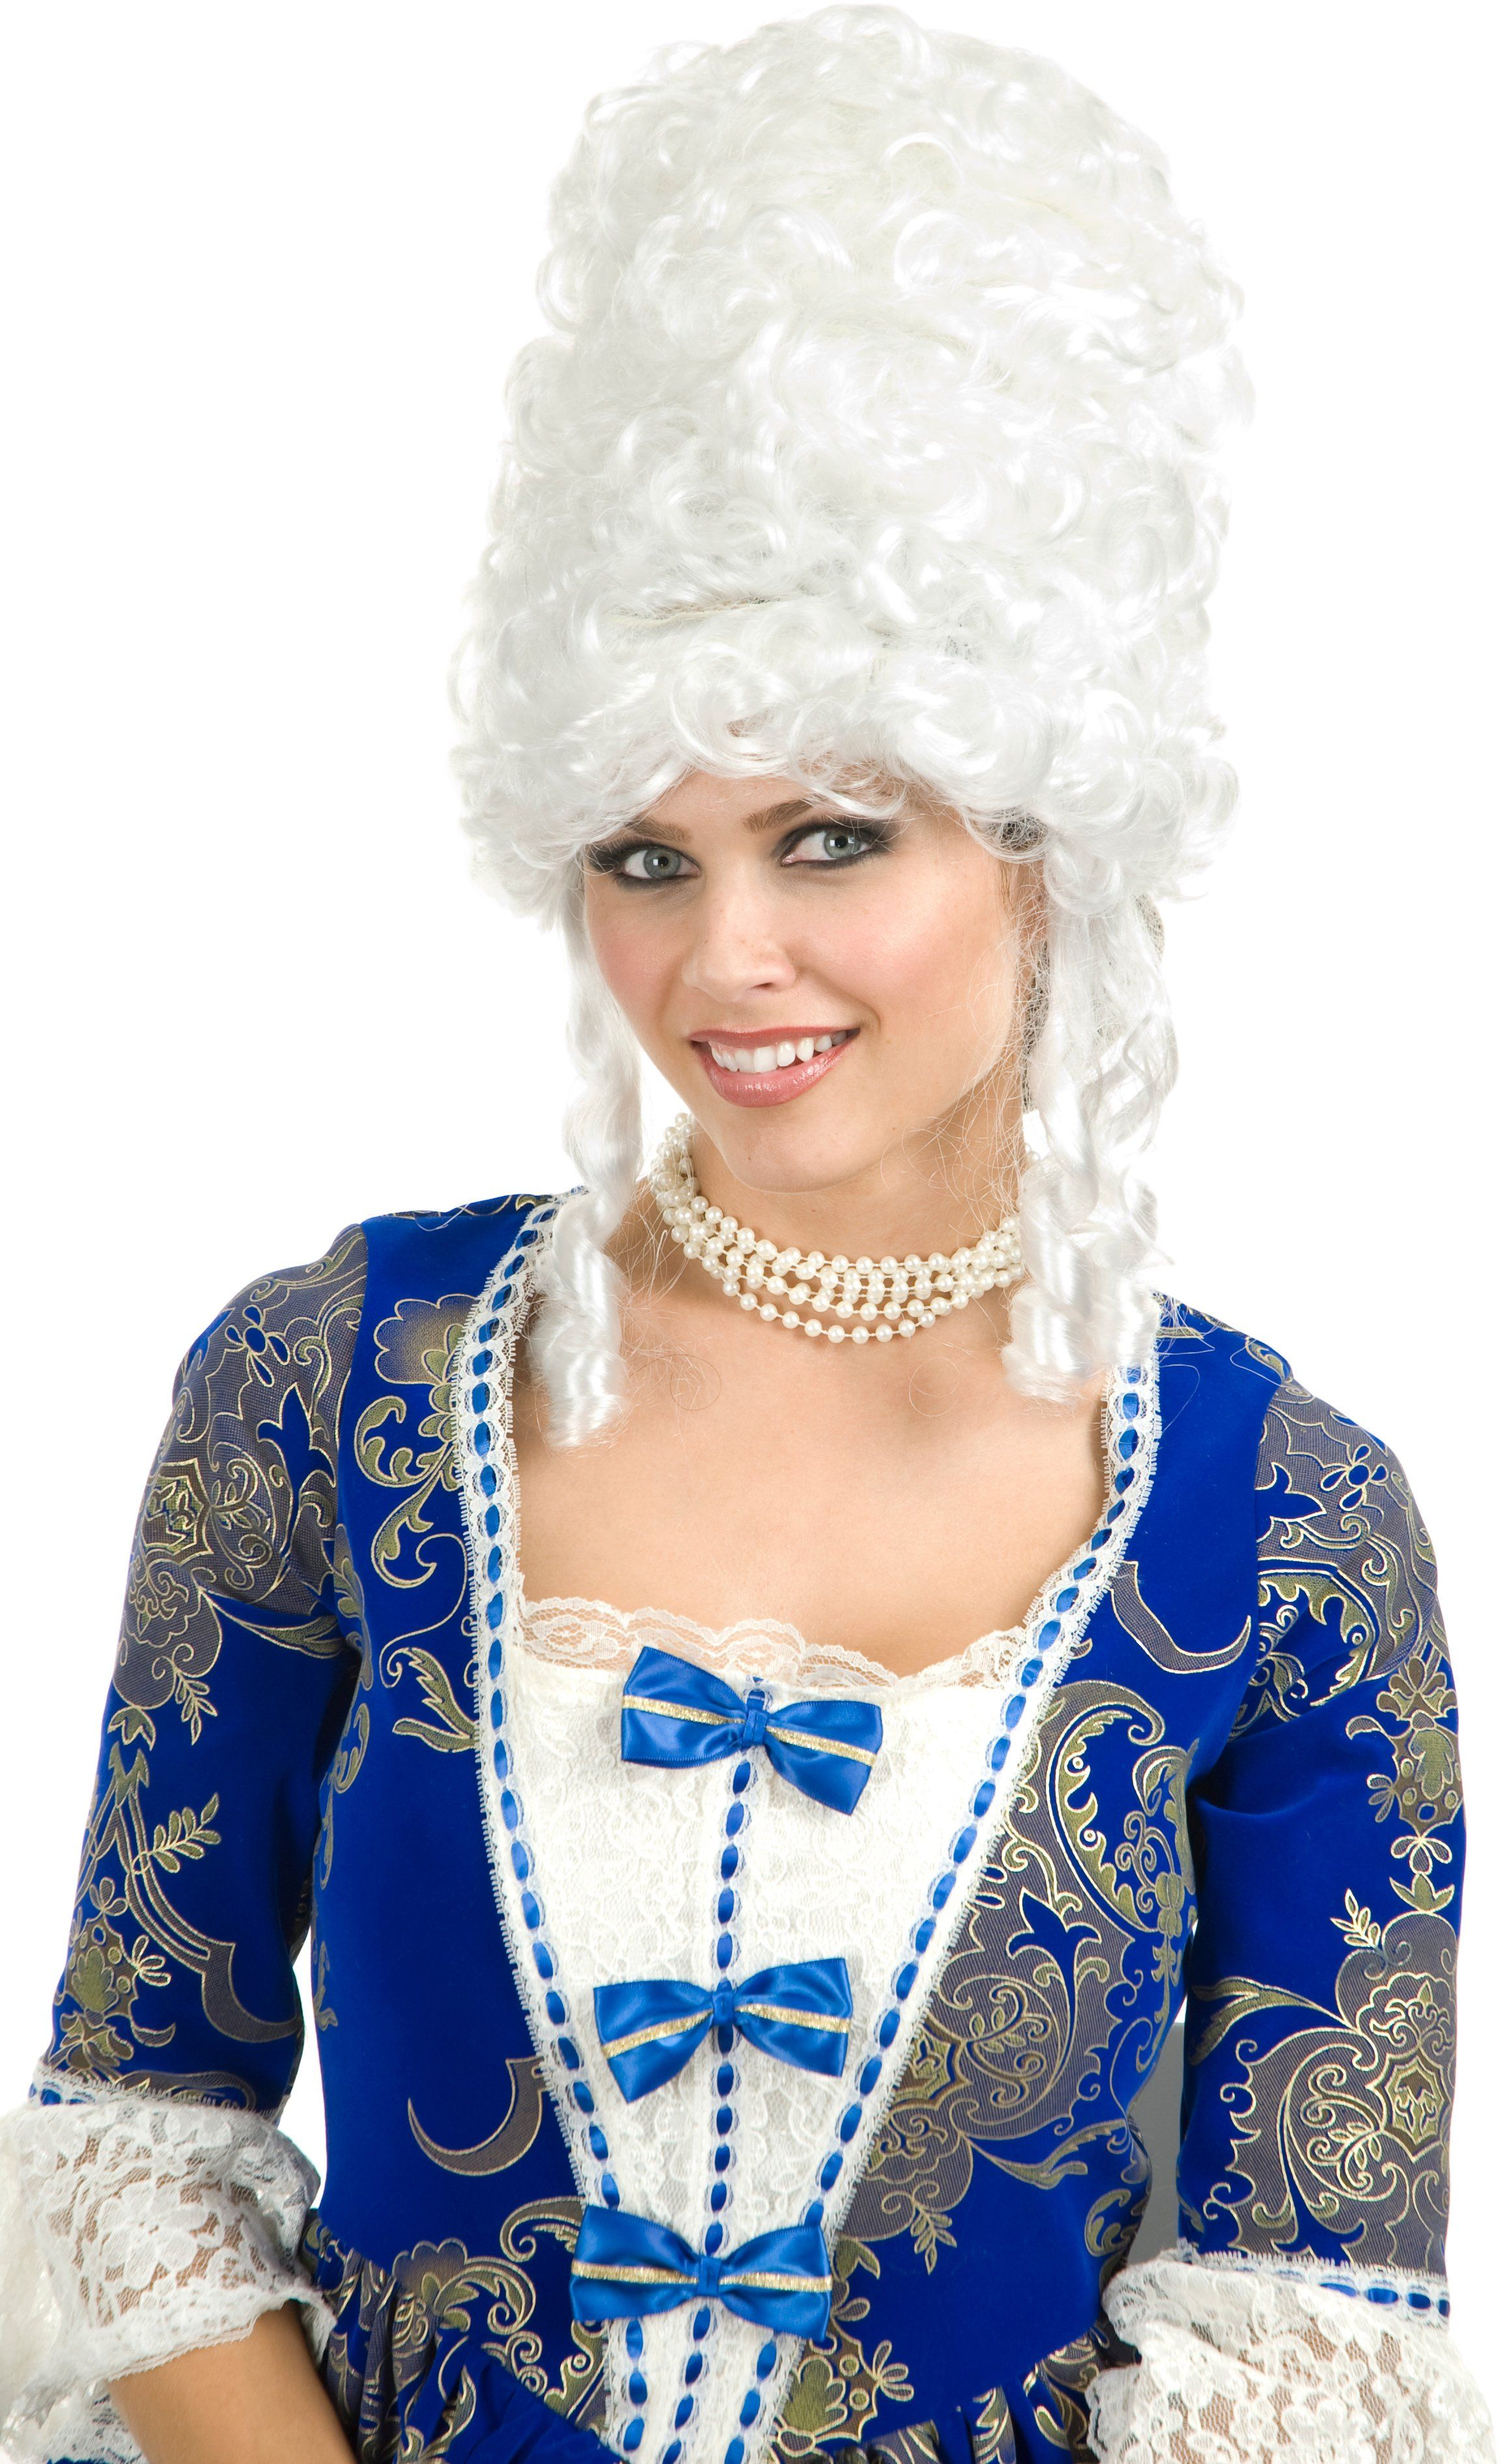 Colonial Man Wig Powder Fancy Dress Up Halloween Costume Accessory 3 COLORS